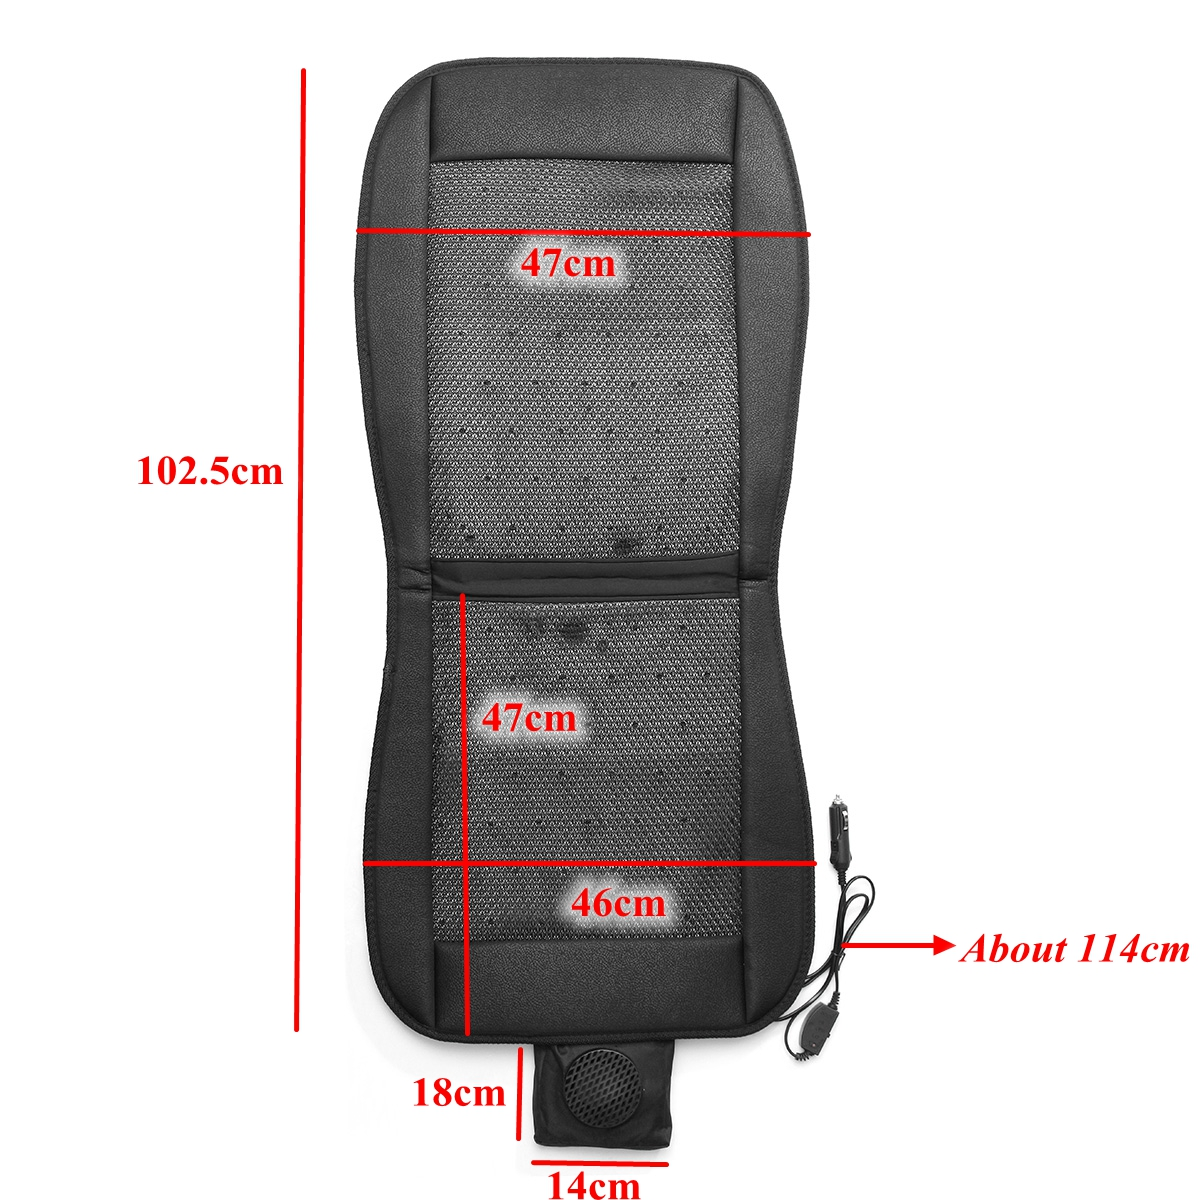 12V Cooling Car Seat Cushion Cover Conditioned Cooler Pad with Air Ventilated Fan